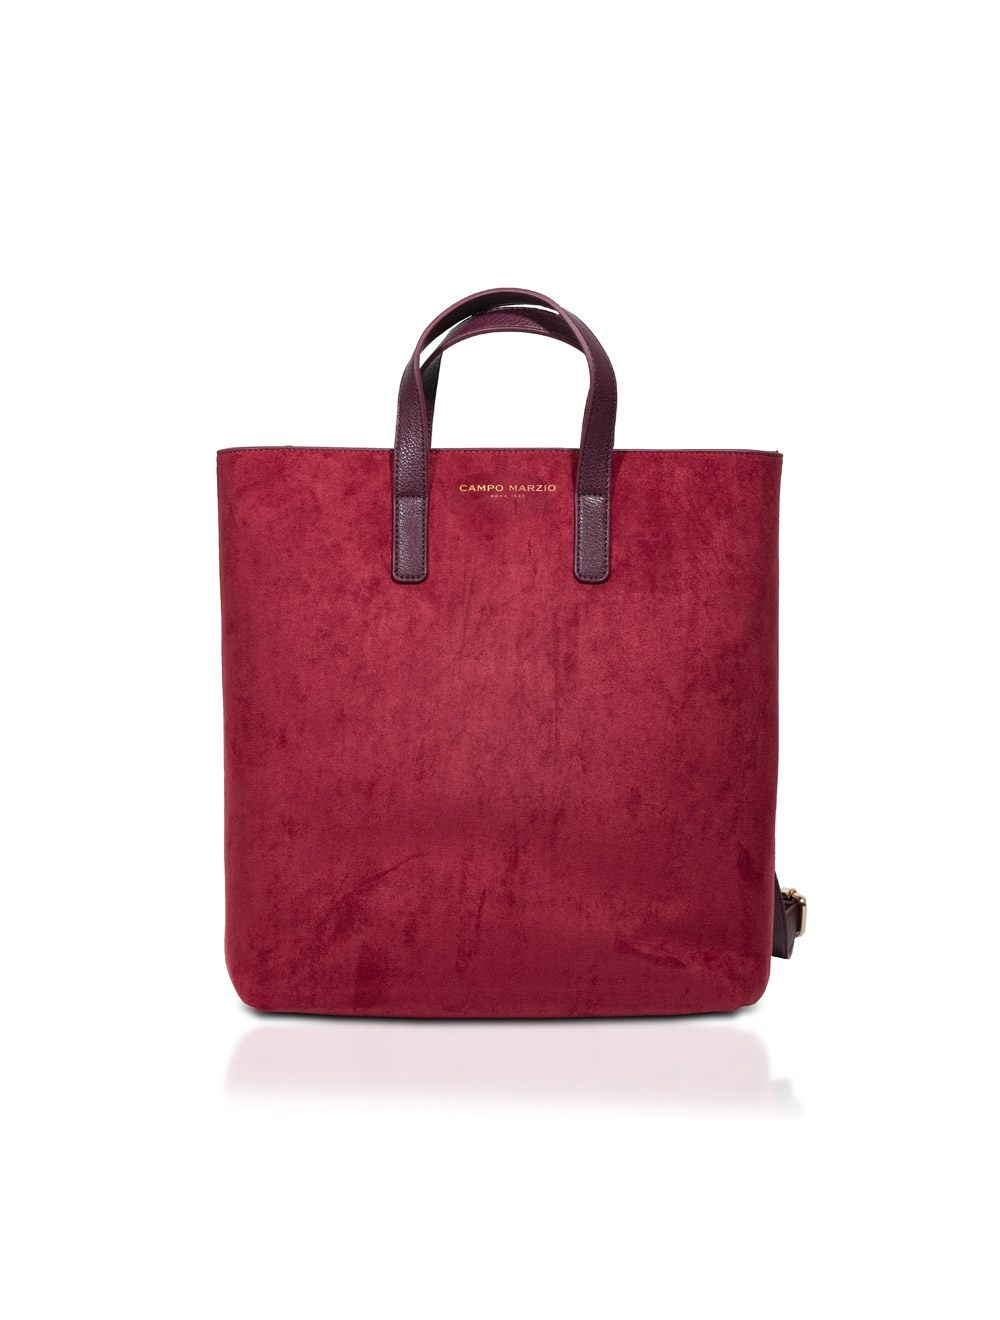 Backpack and Bag Loie - Red Wine